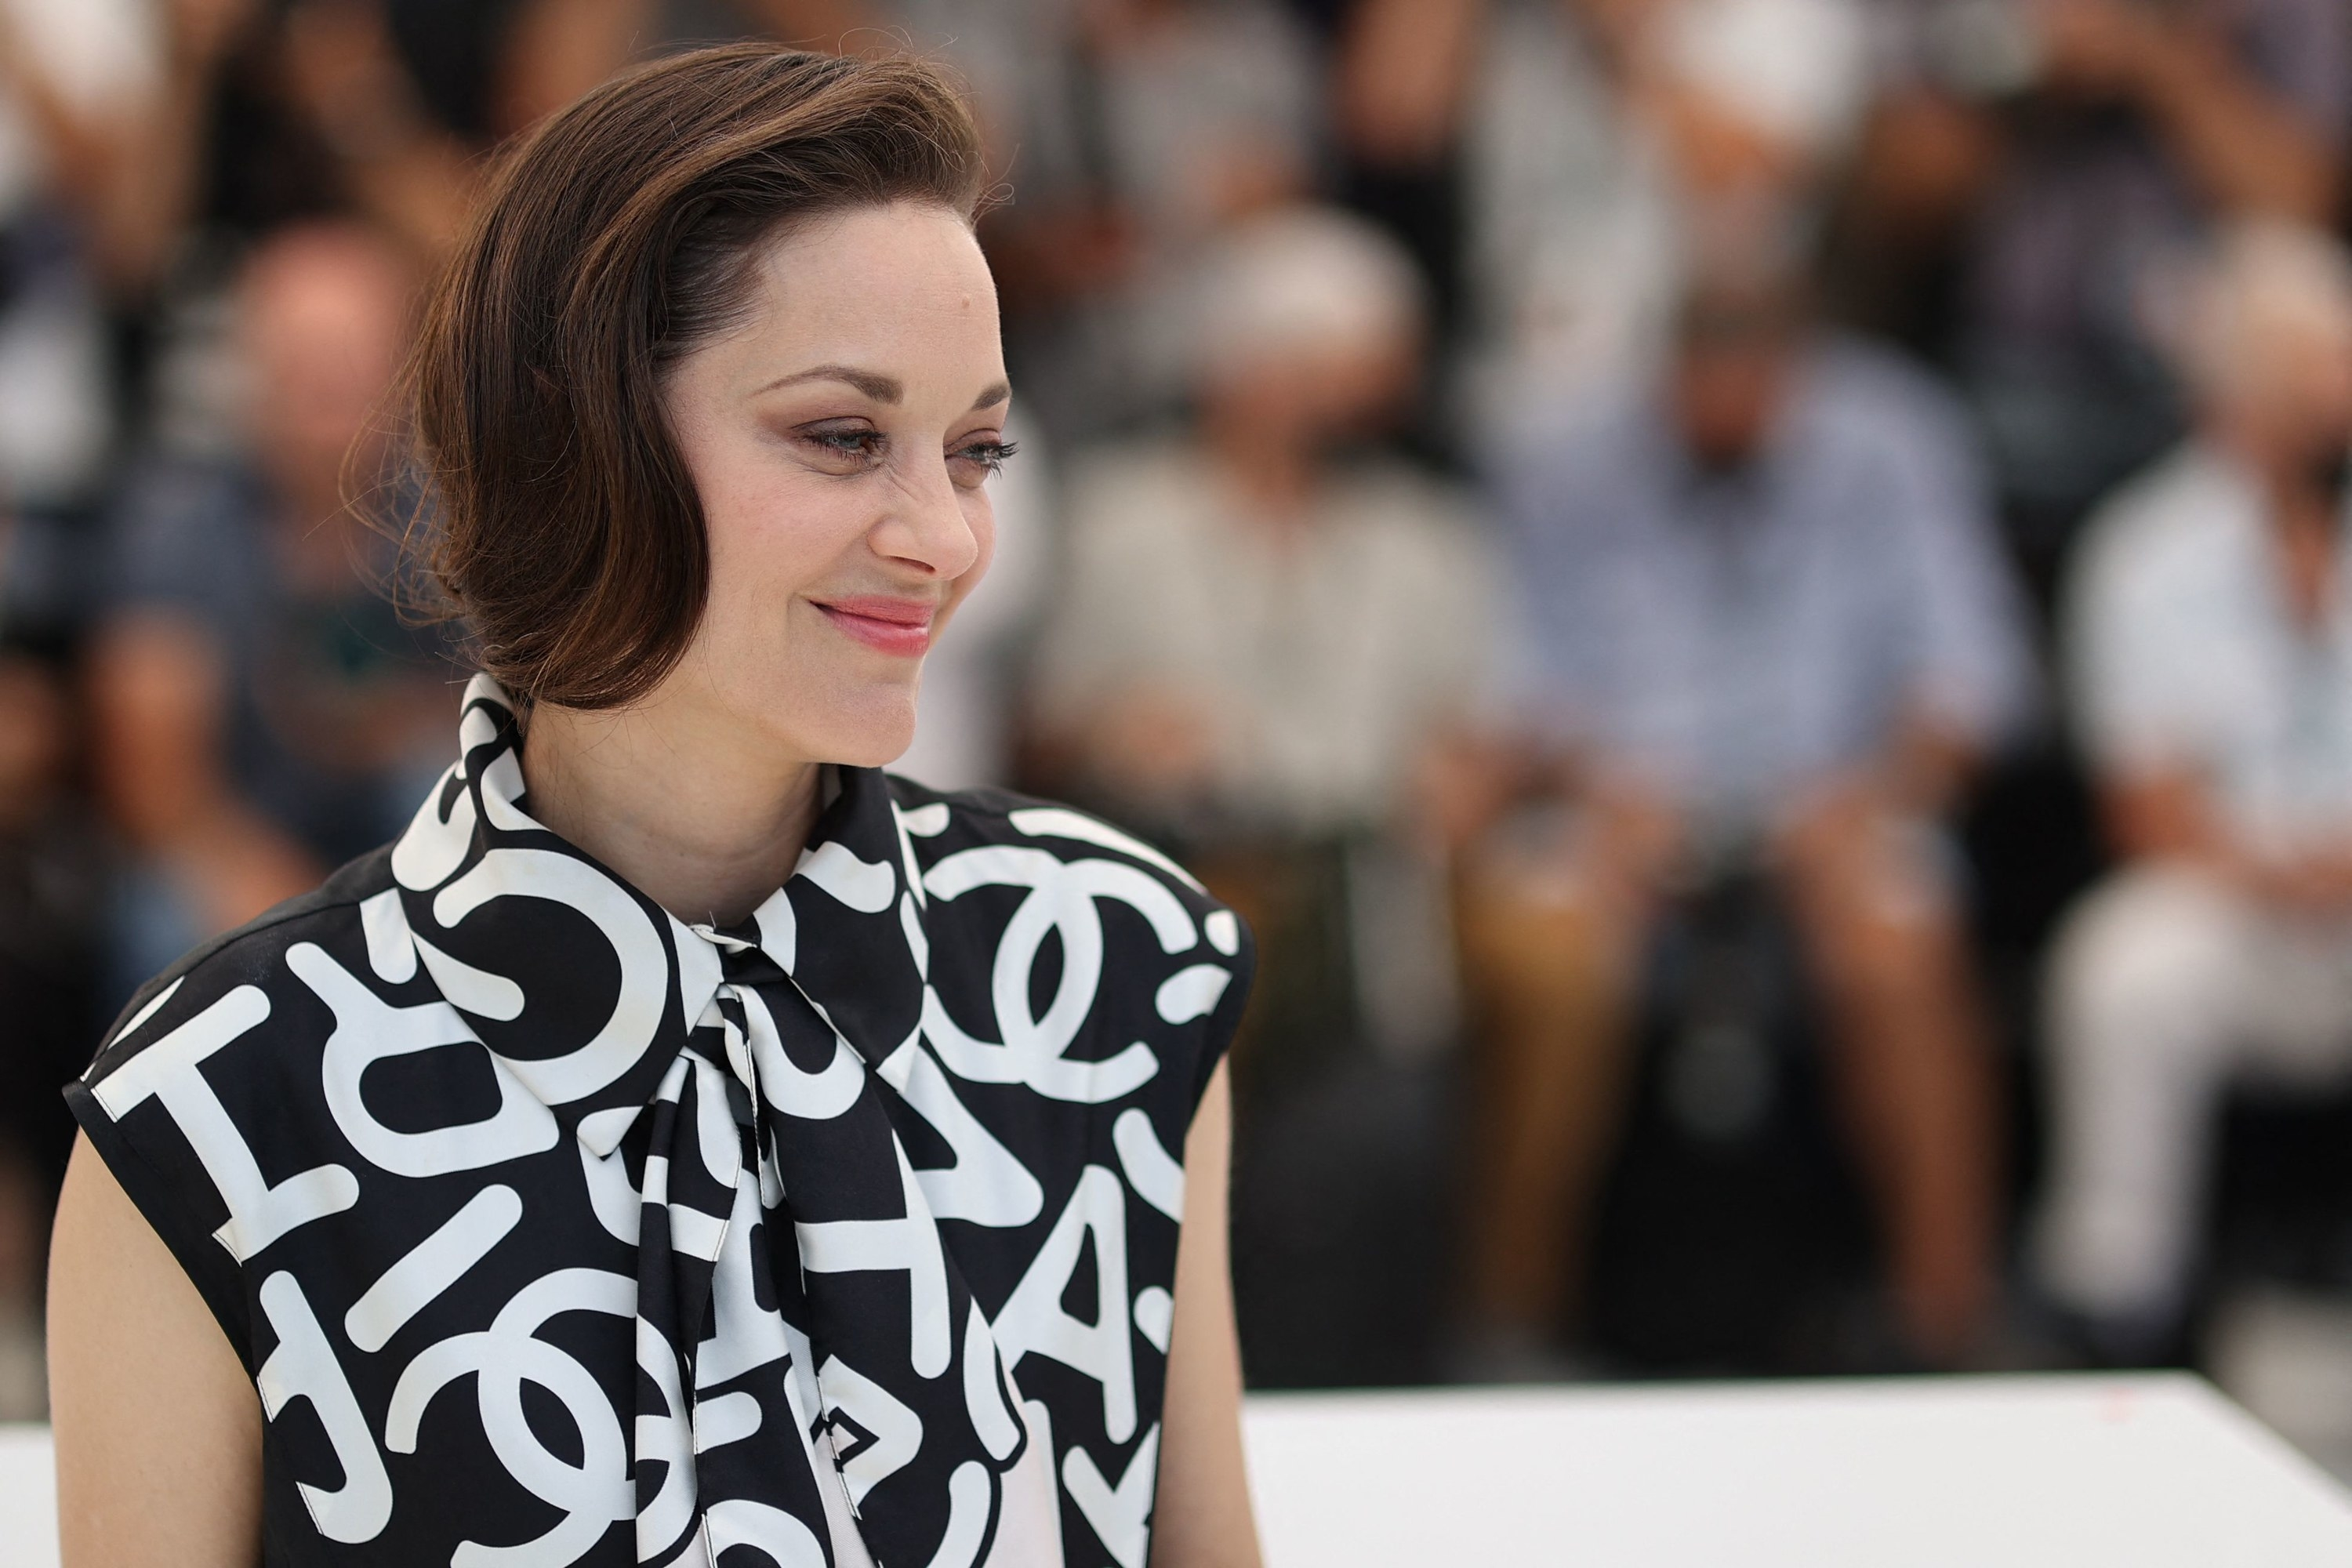 """Marion Cotillard is photographed ahead of the """"Annette"""" premiere at the Cannes Film Festival"""